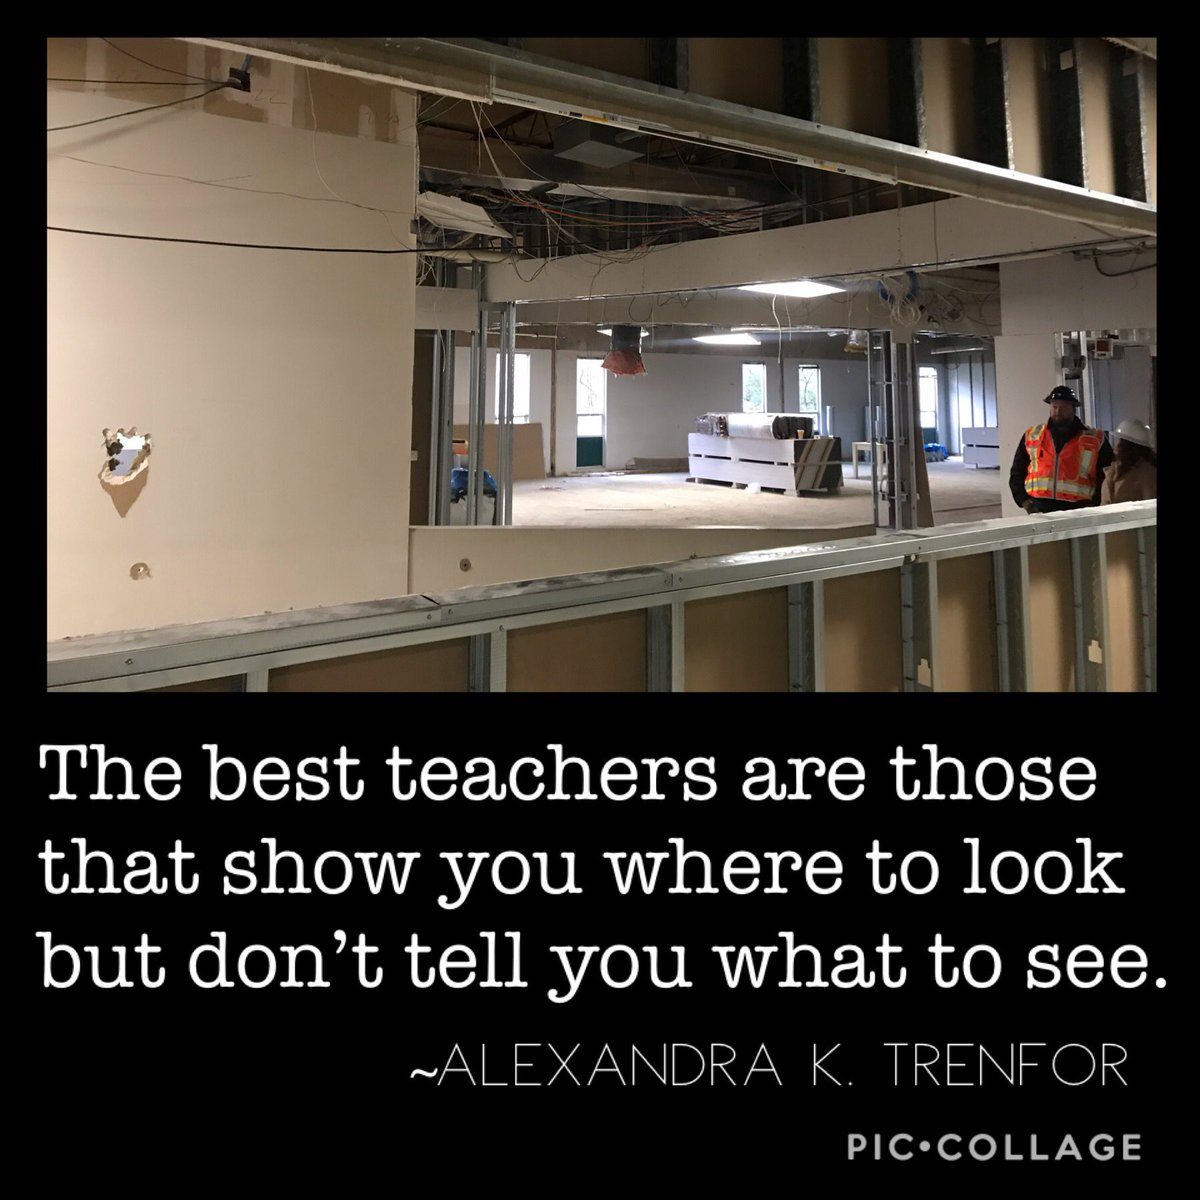 Developing innovative learning environments where students can ideate, create and dream big! #misdproud